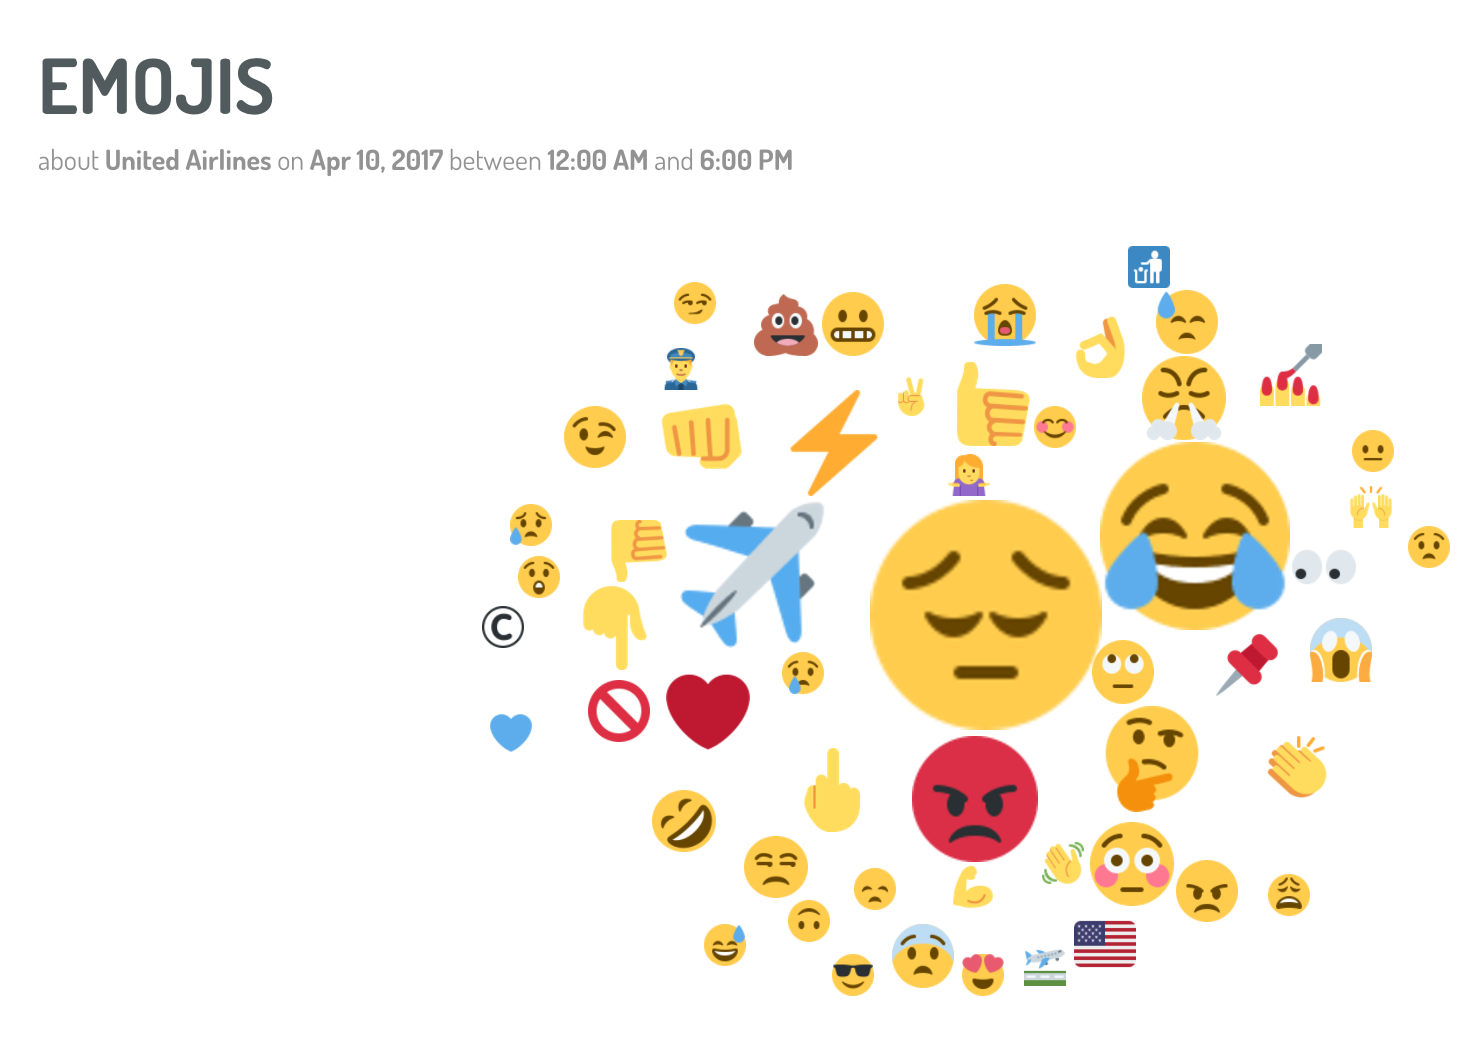 emojis about united scandal